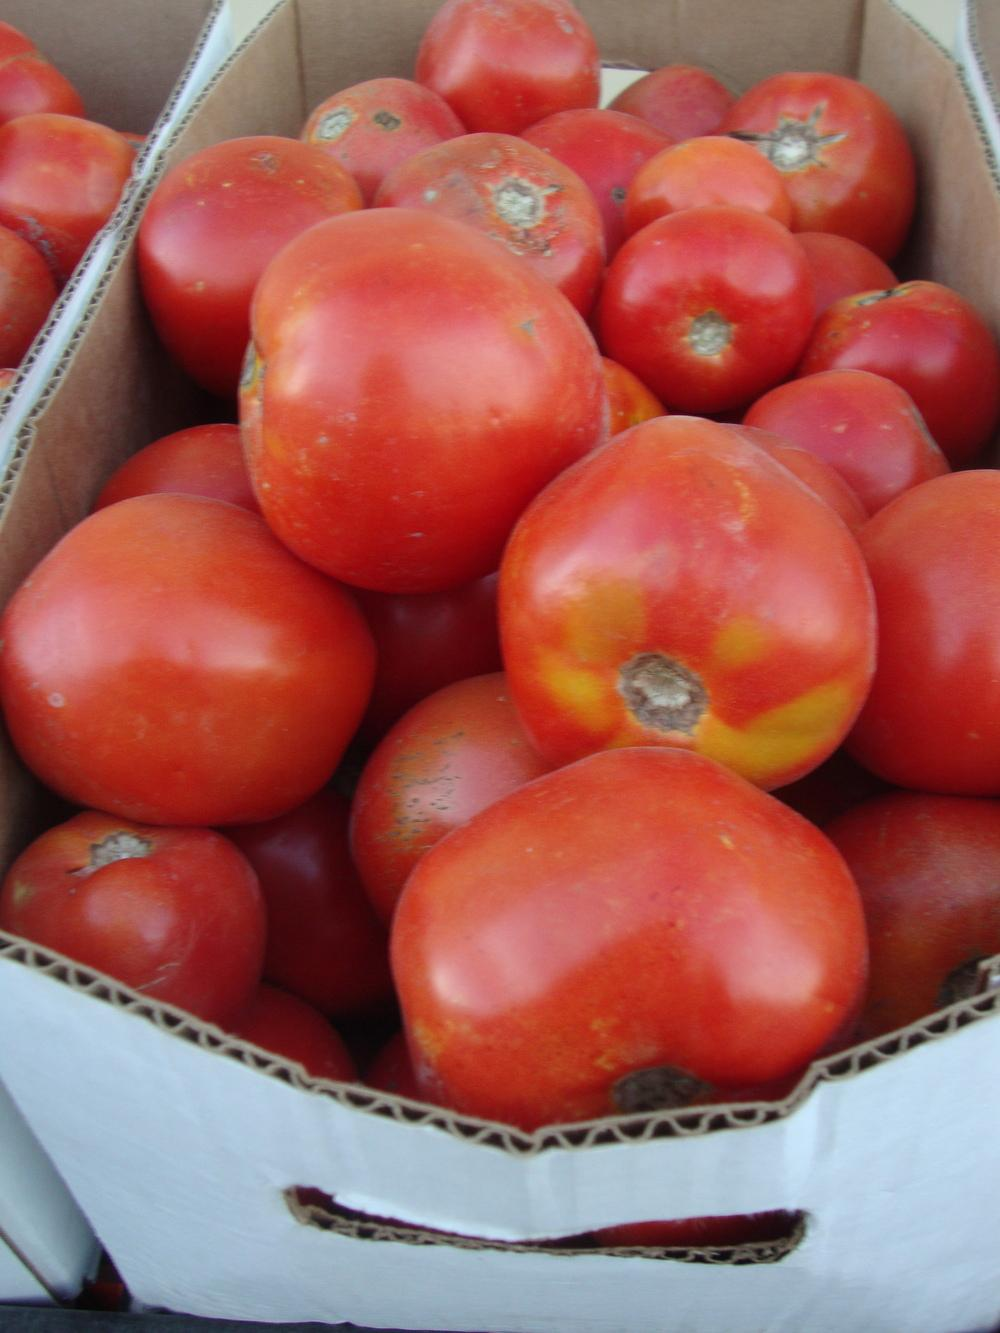 Photo of Tomatoes (Solanum lycopersicum) uploaded by Paul2032